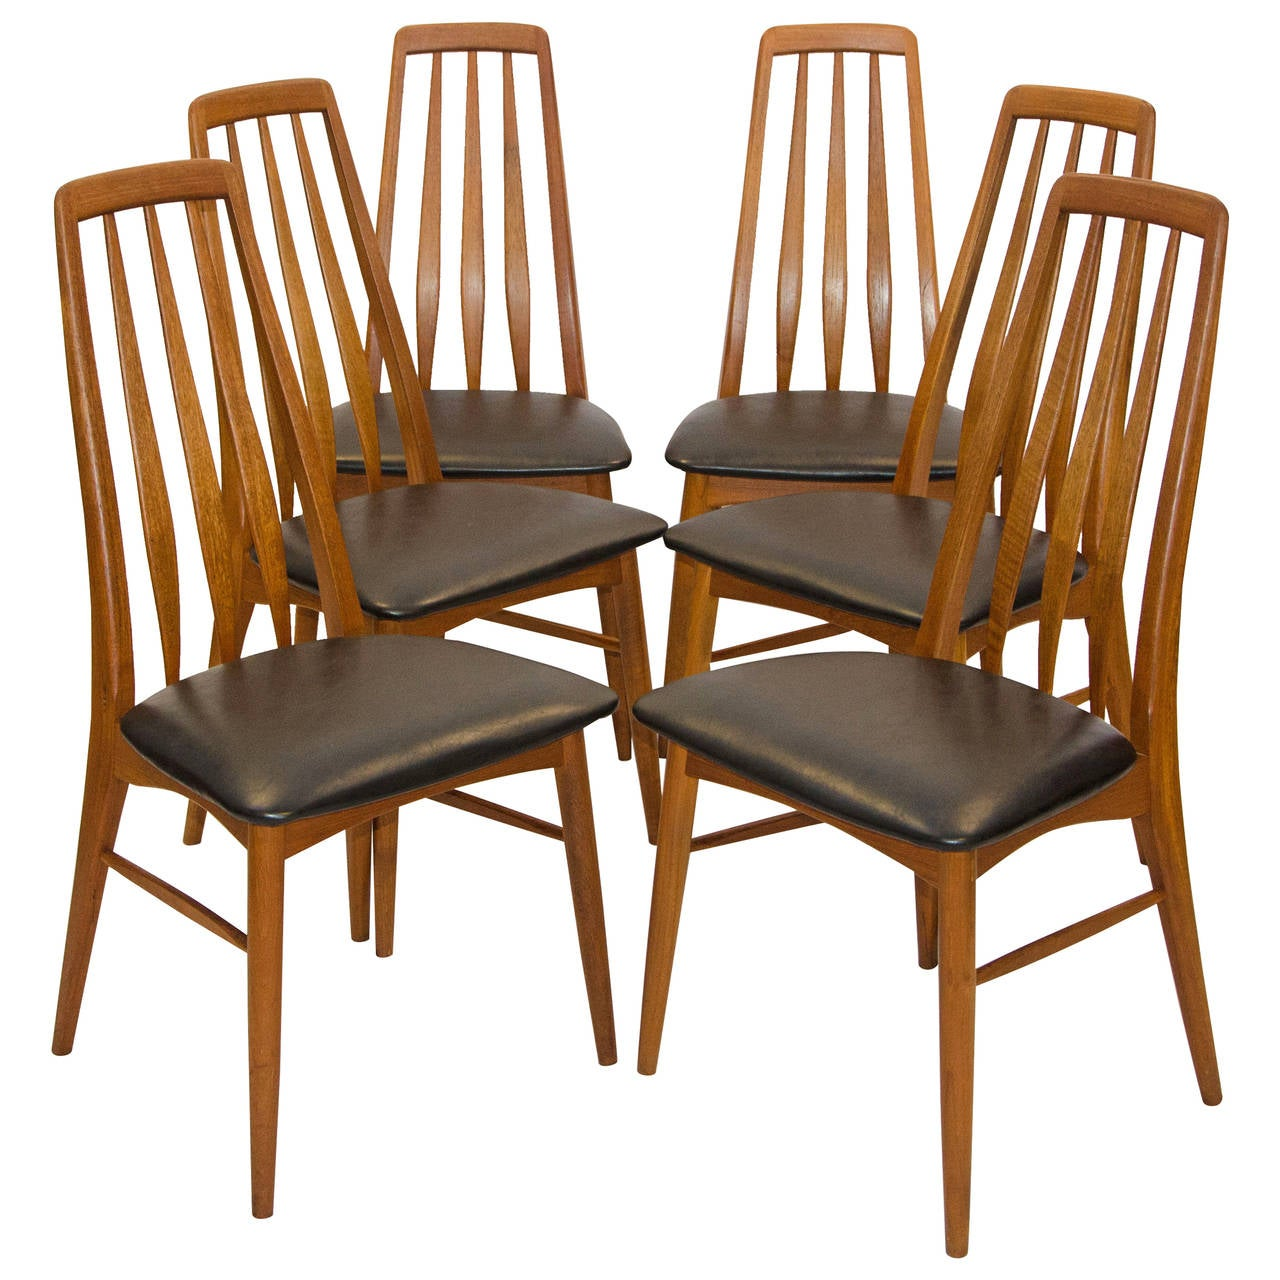 Danish Teak Dining Chairs Six Danish Teak Dining Chairs Koefoed Hornslet